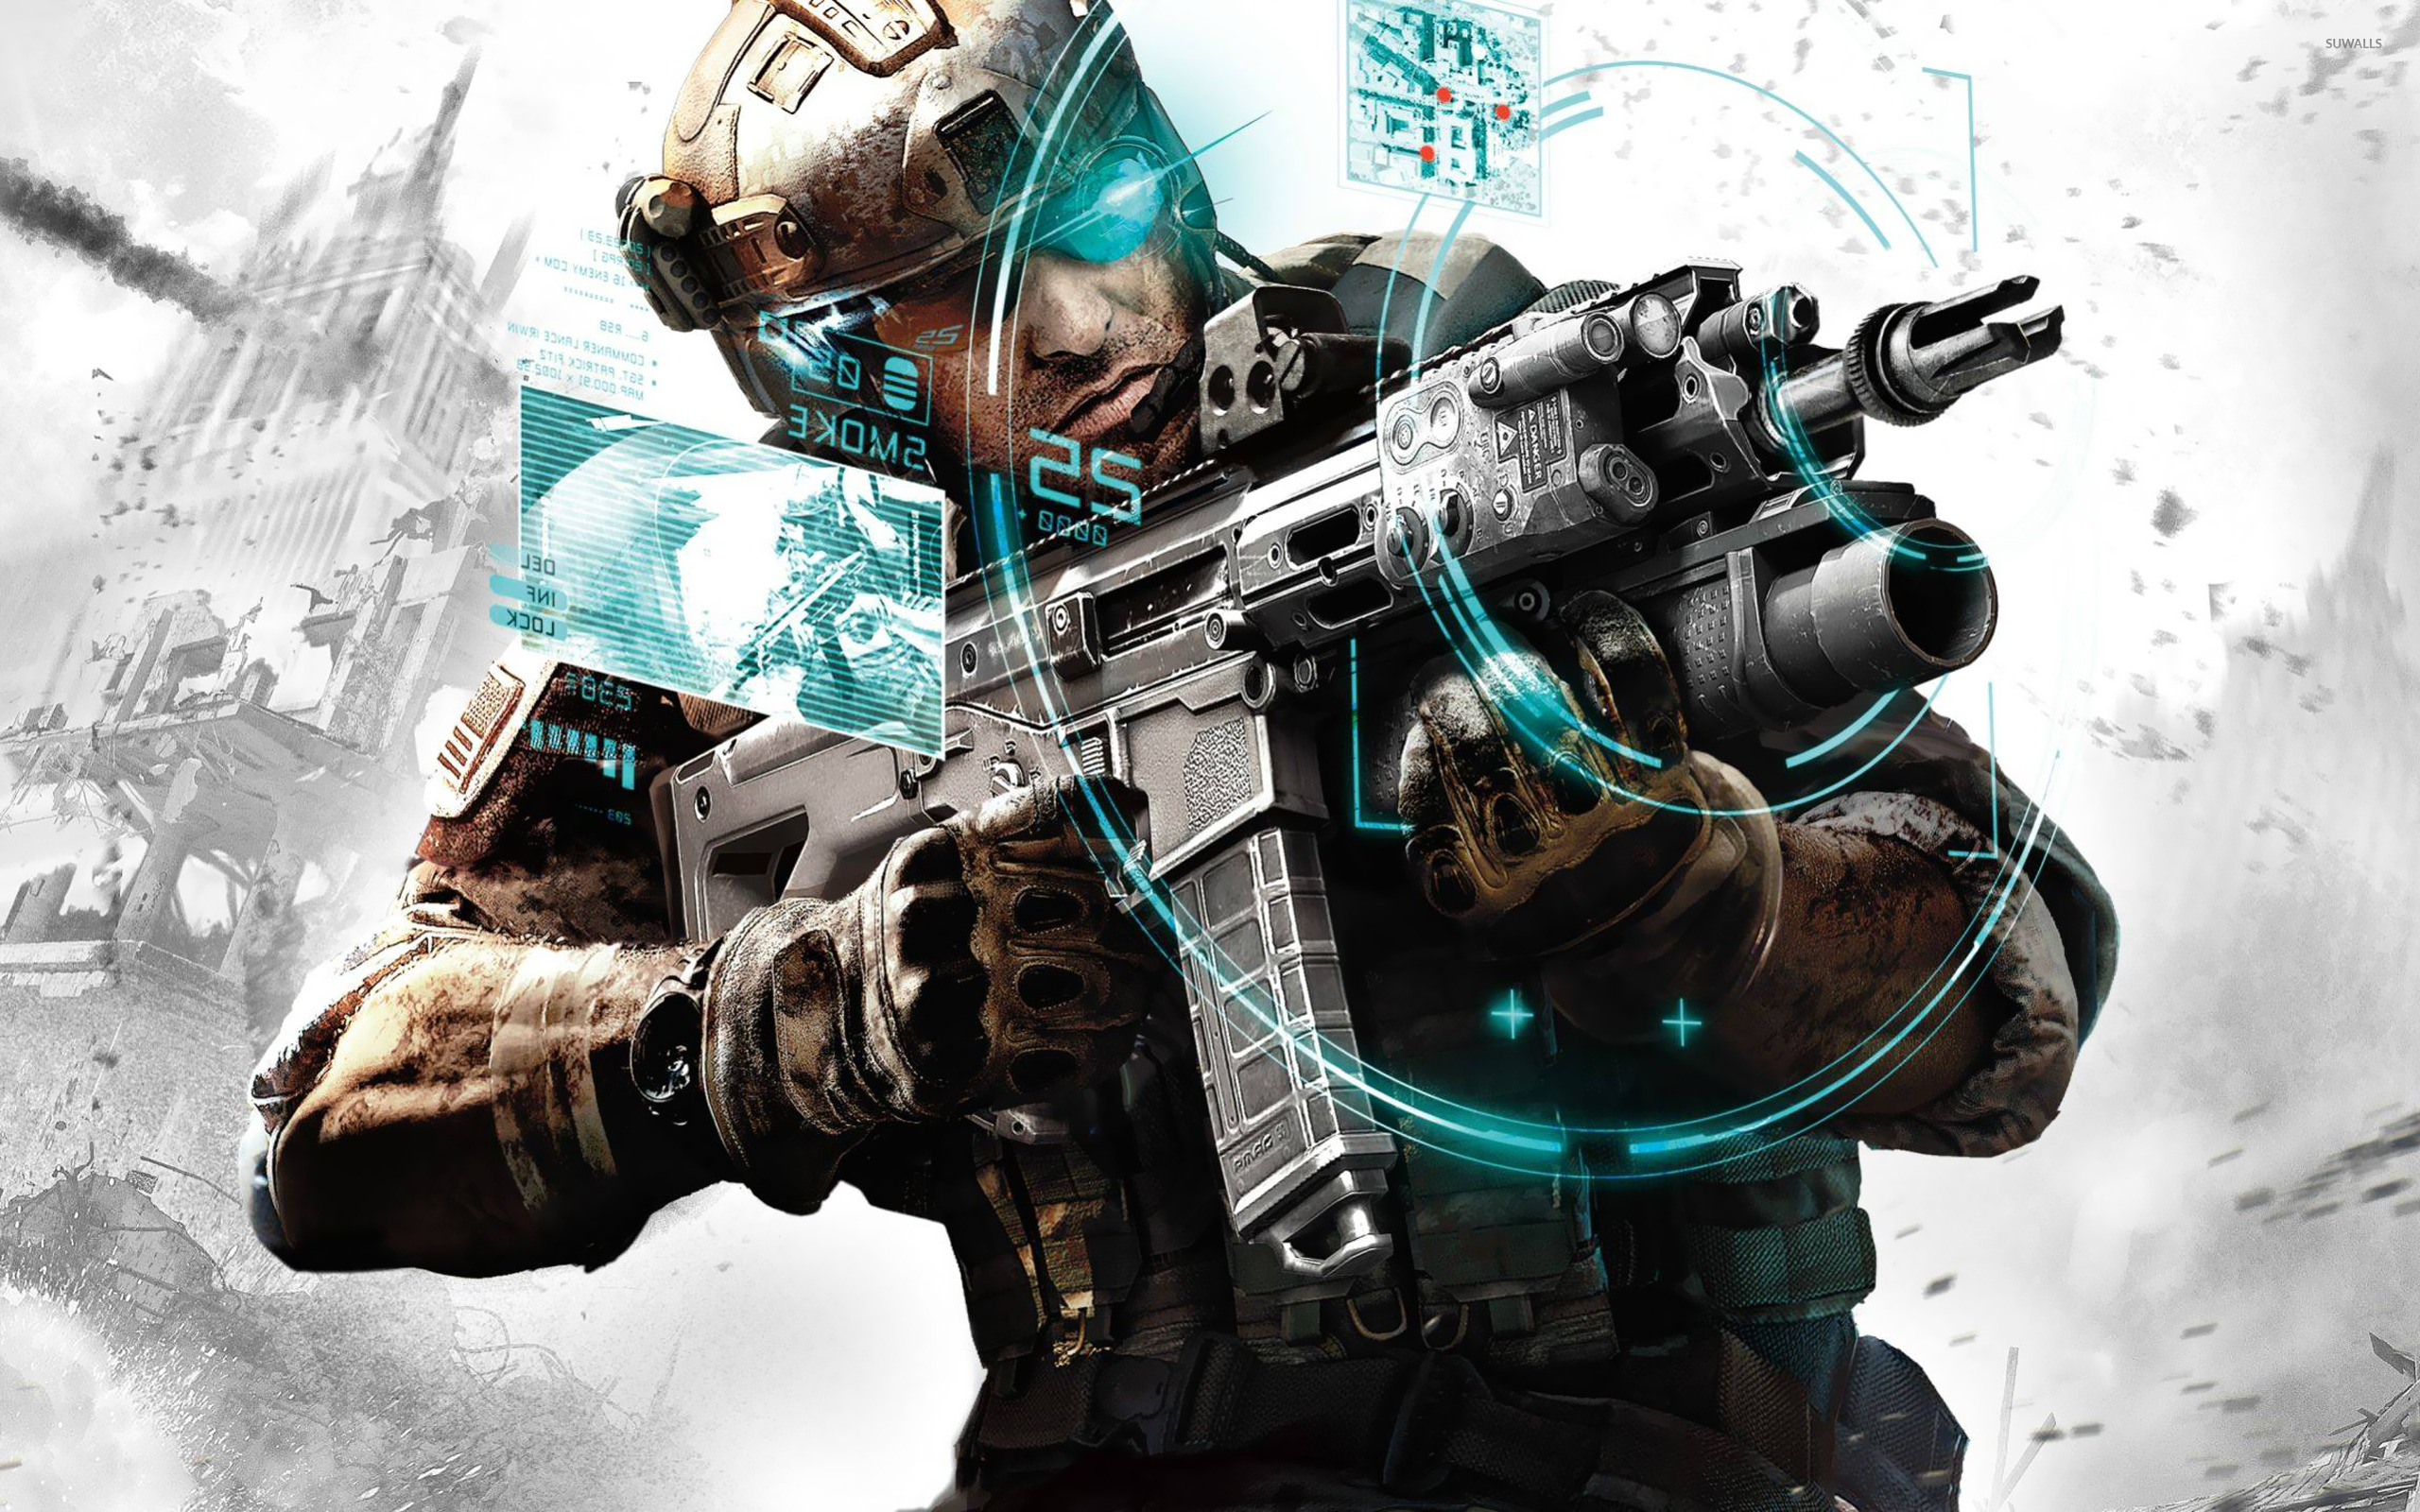 Tom Clancys Ghost Recon 3 Wallpaper